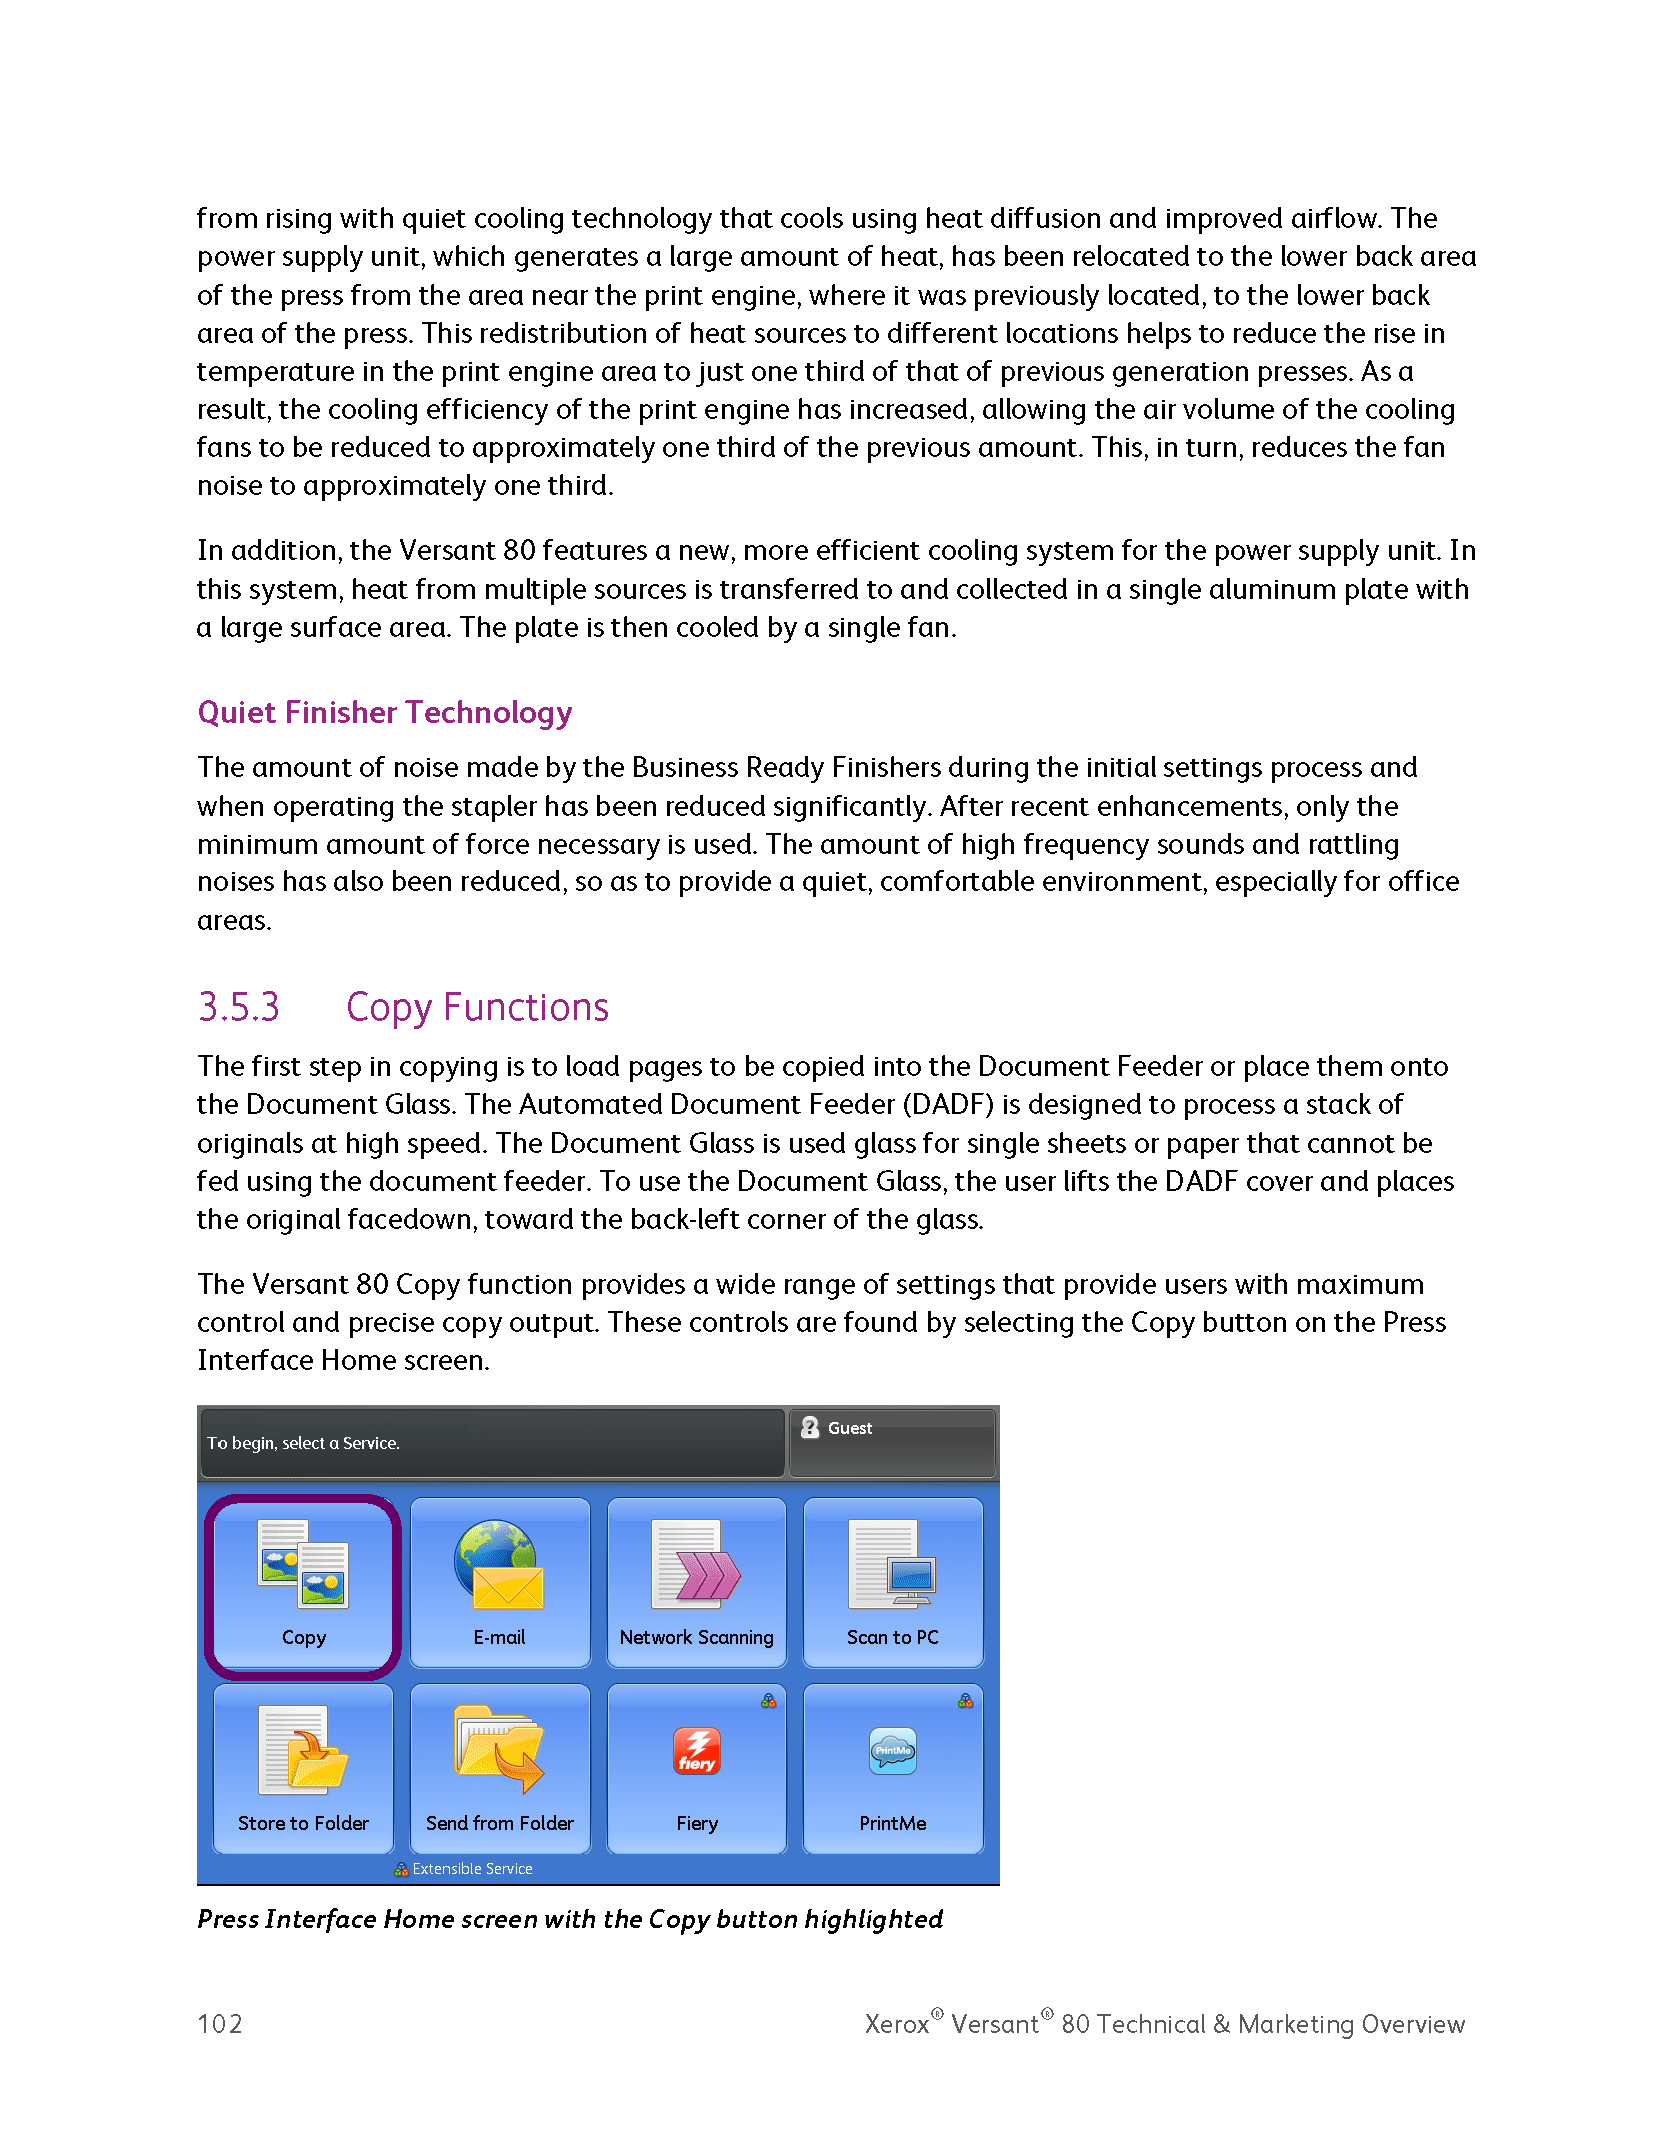 Versant 80 TMO Final_12.18.14.Optimized_Page_110.png